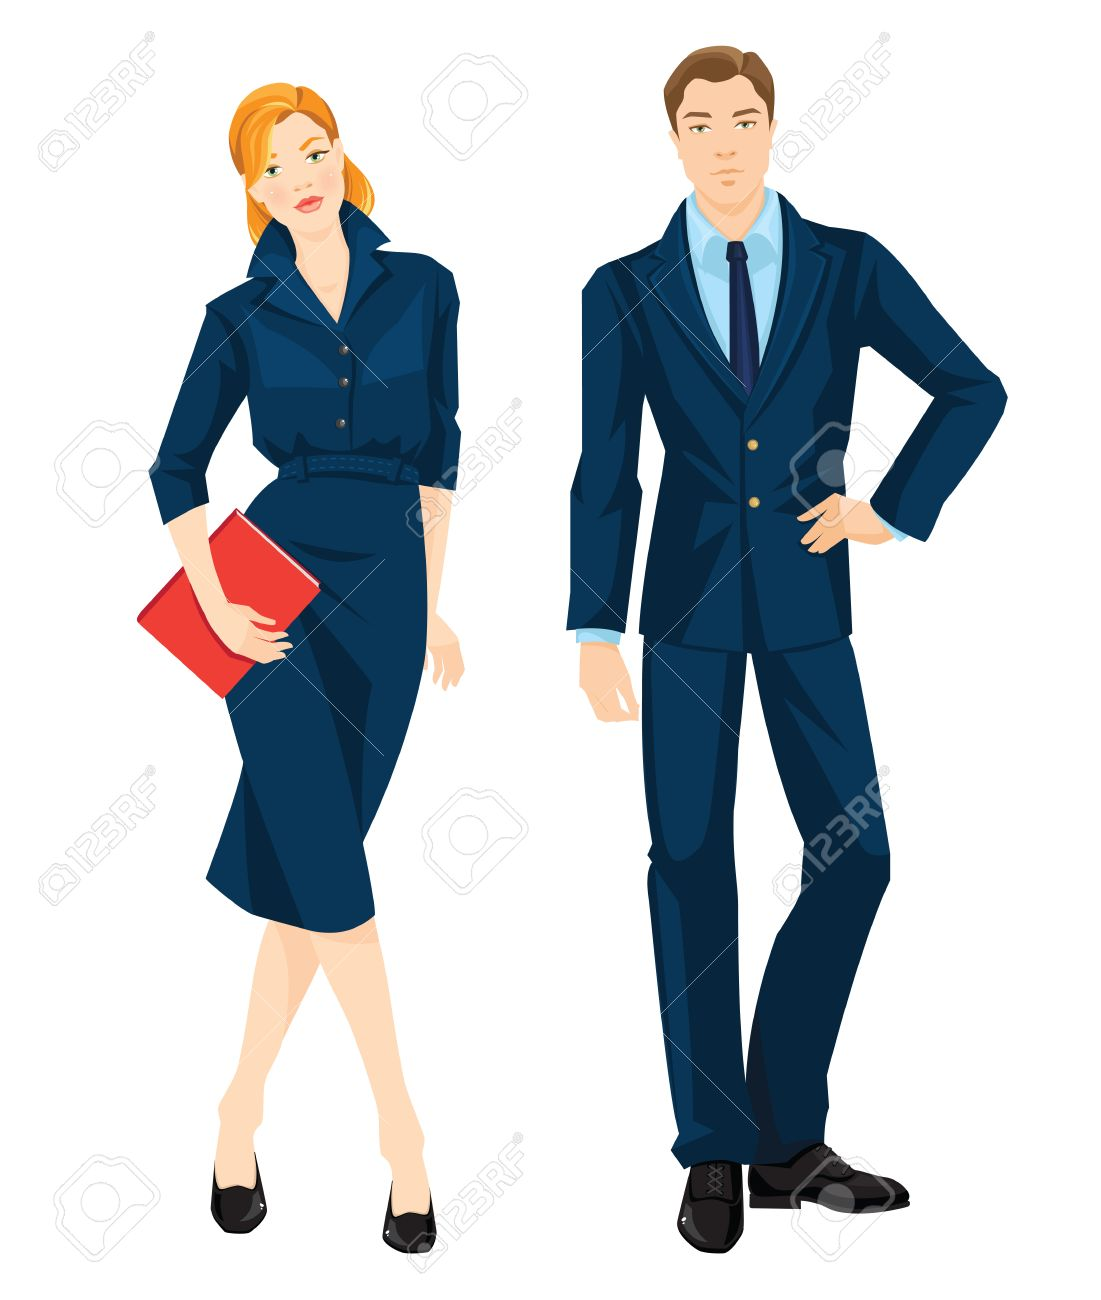 c483467c4a31 Vector illustration of corporate dress code. Young redhead woman in  official blue dress holding document in her hand. Business man in formal  navy blue suit ...